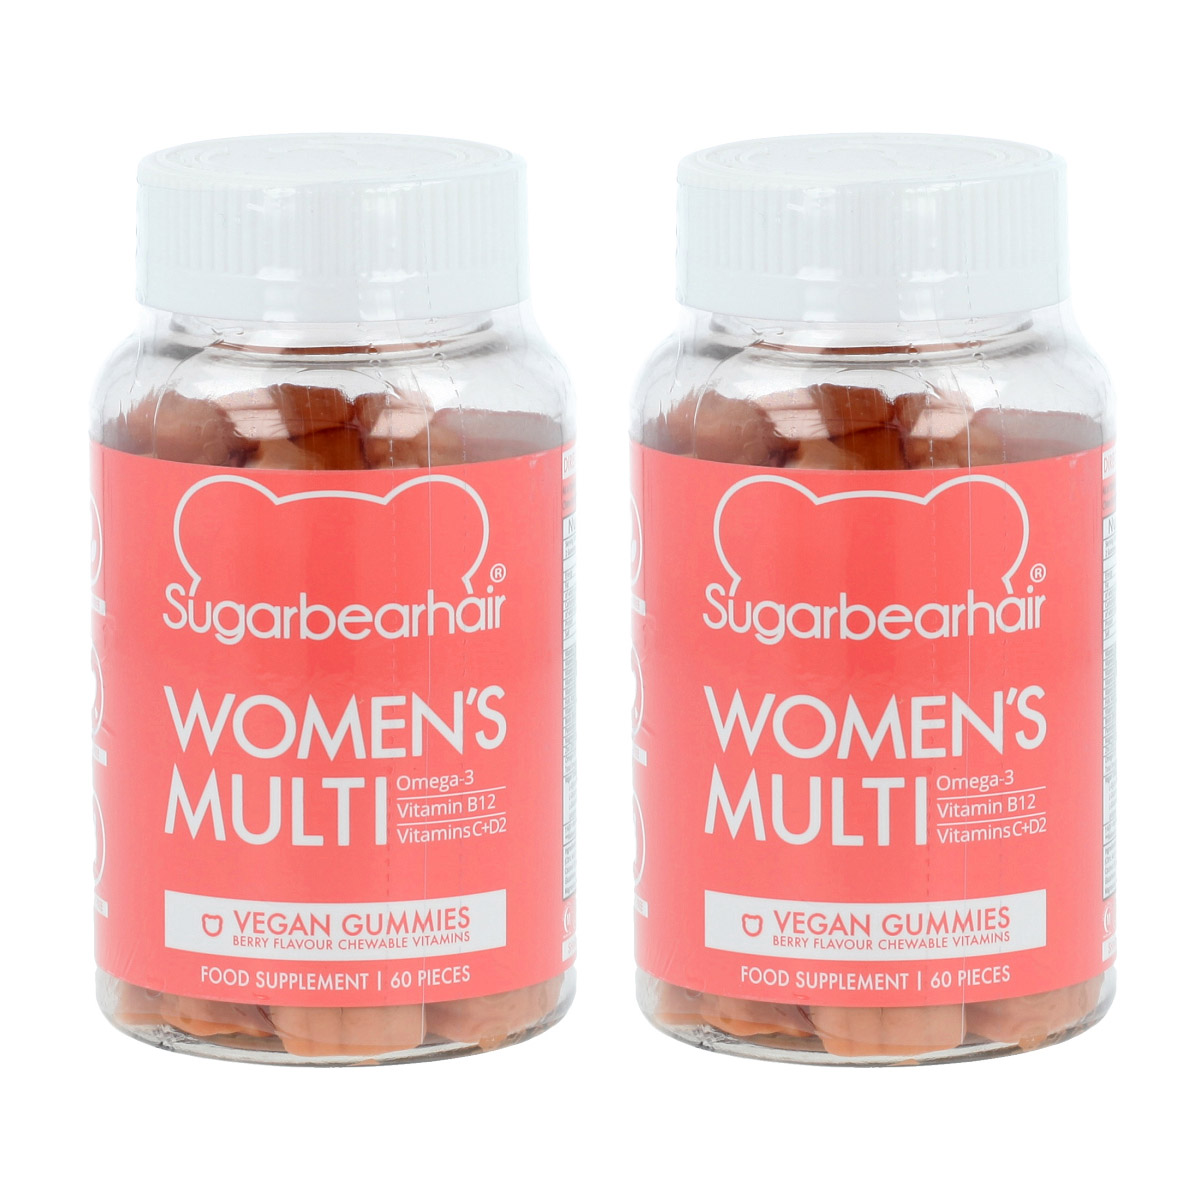 SugarBearHair Women's Multi Vitamins 2 x 60 St. 18591